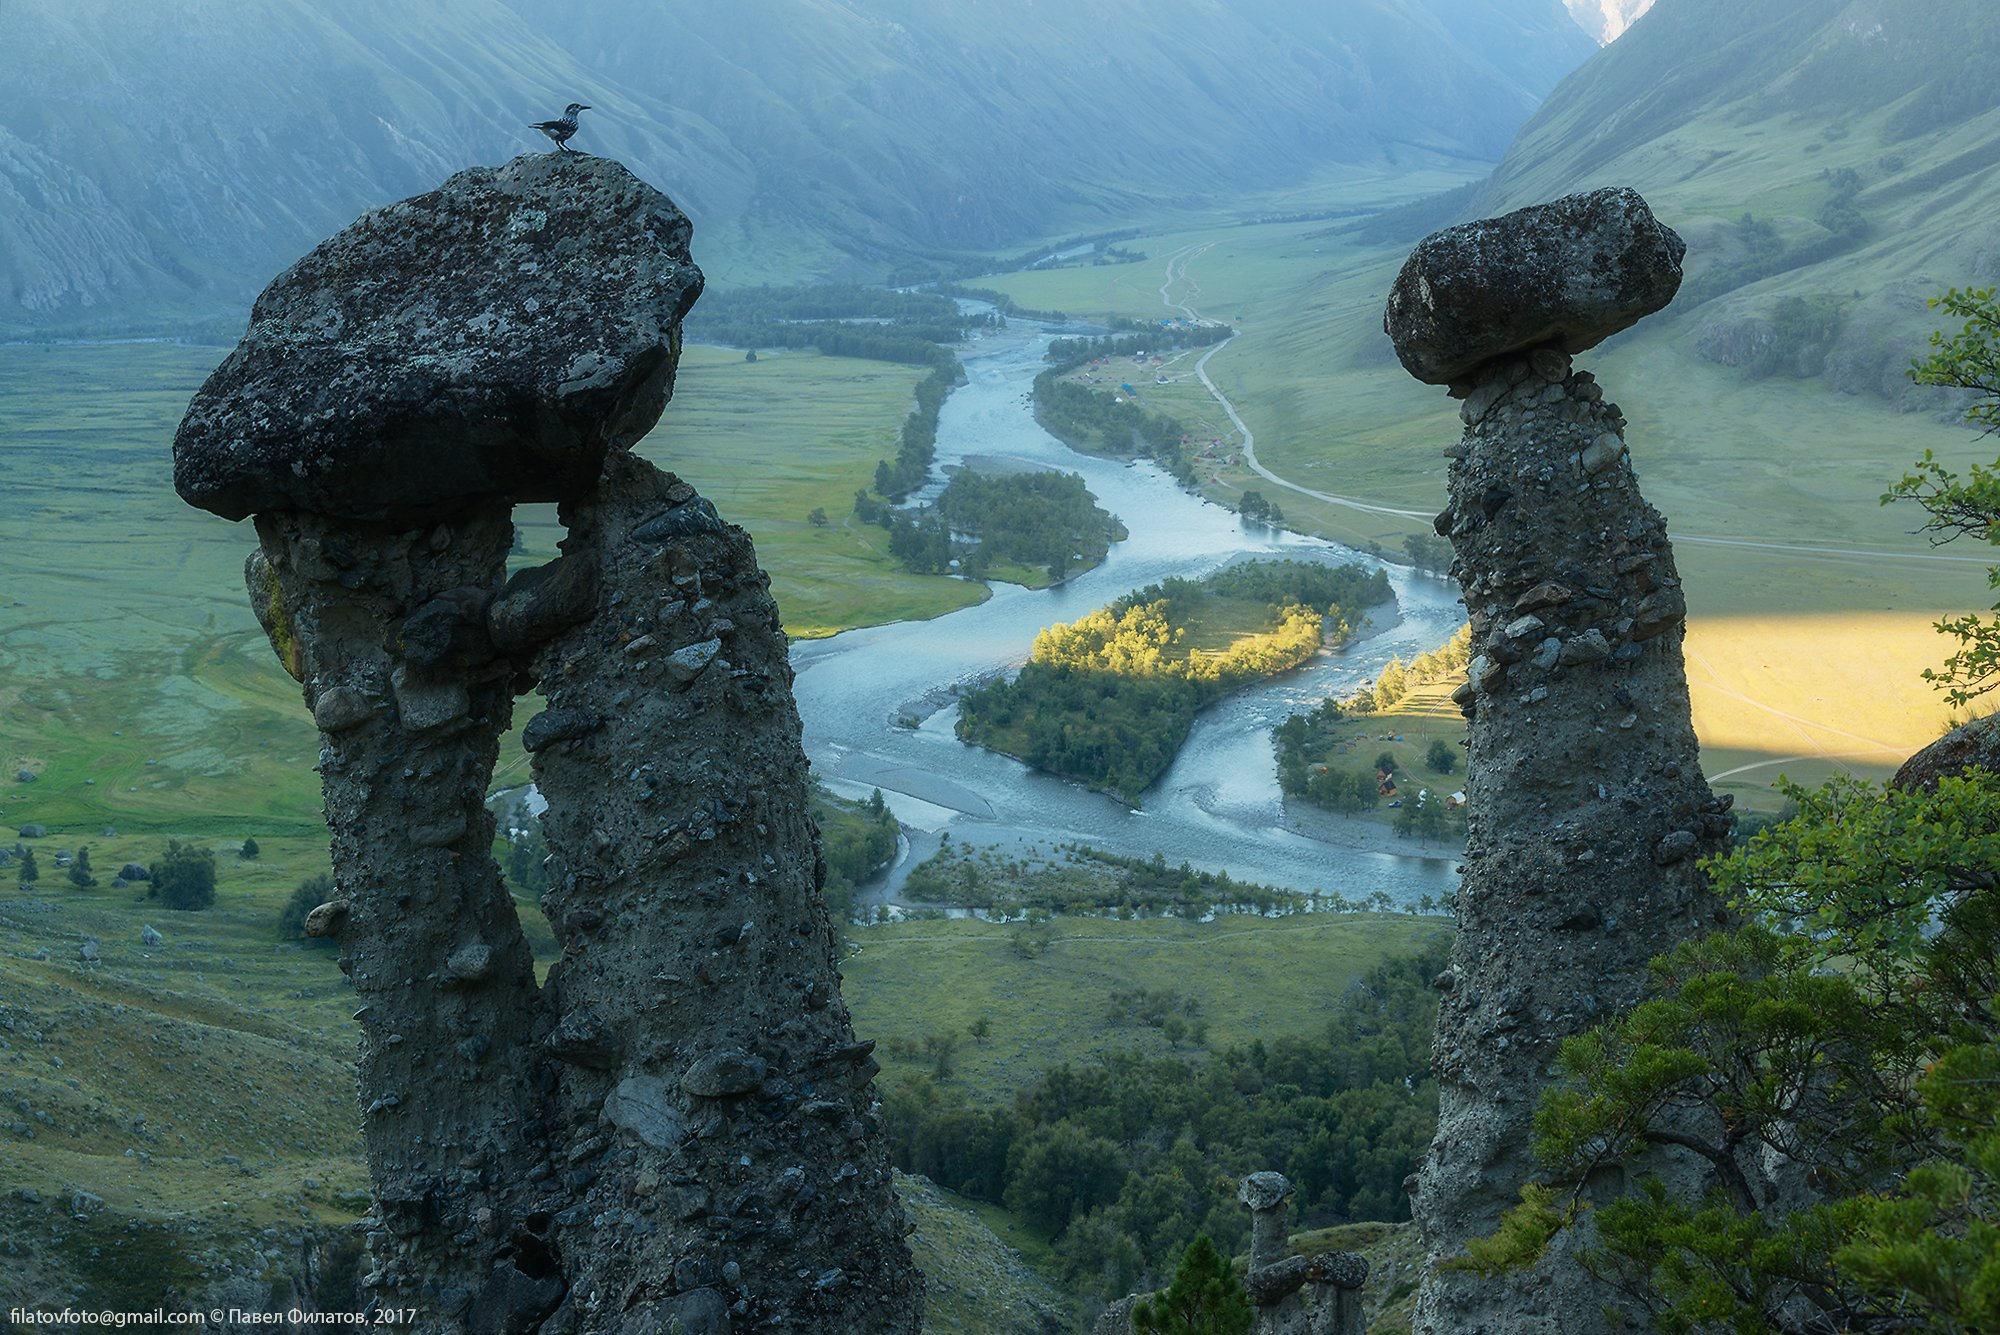 алтай, altai, сибирь, siberia, pavel filatov, павел филатов, чулышман, каменные грибы, рассвет, кедровка, Павел Филатов